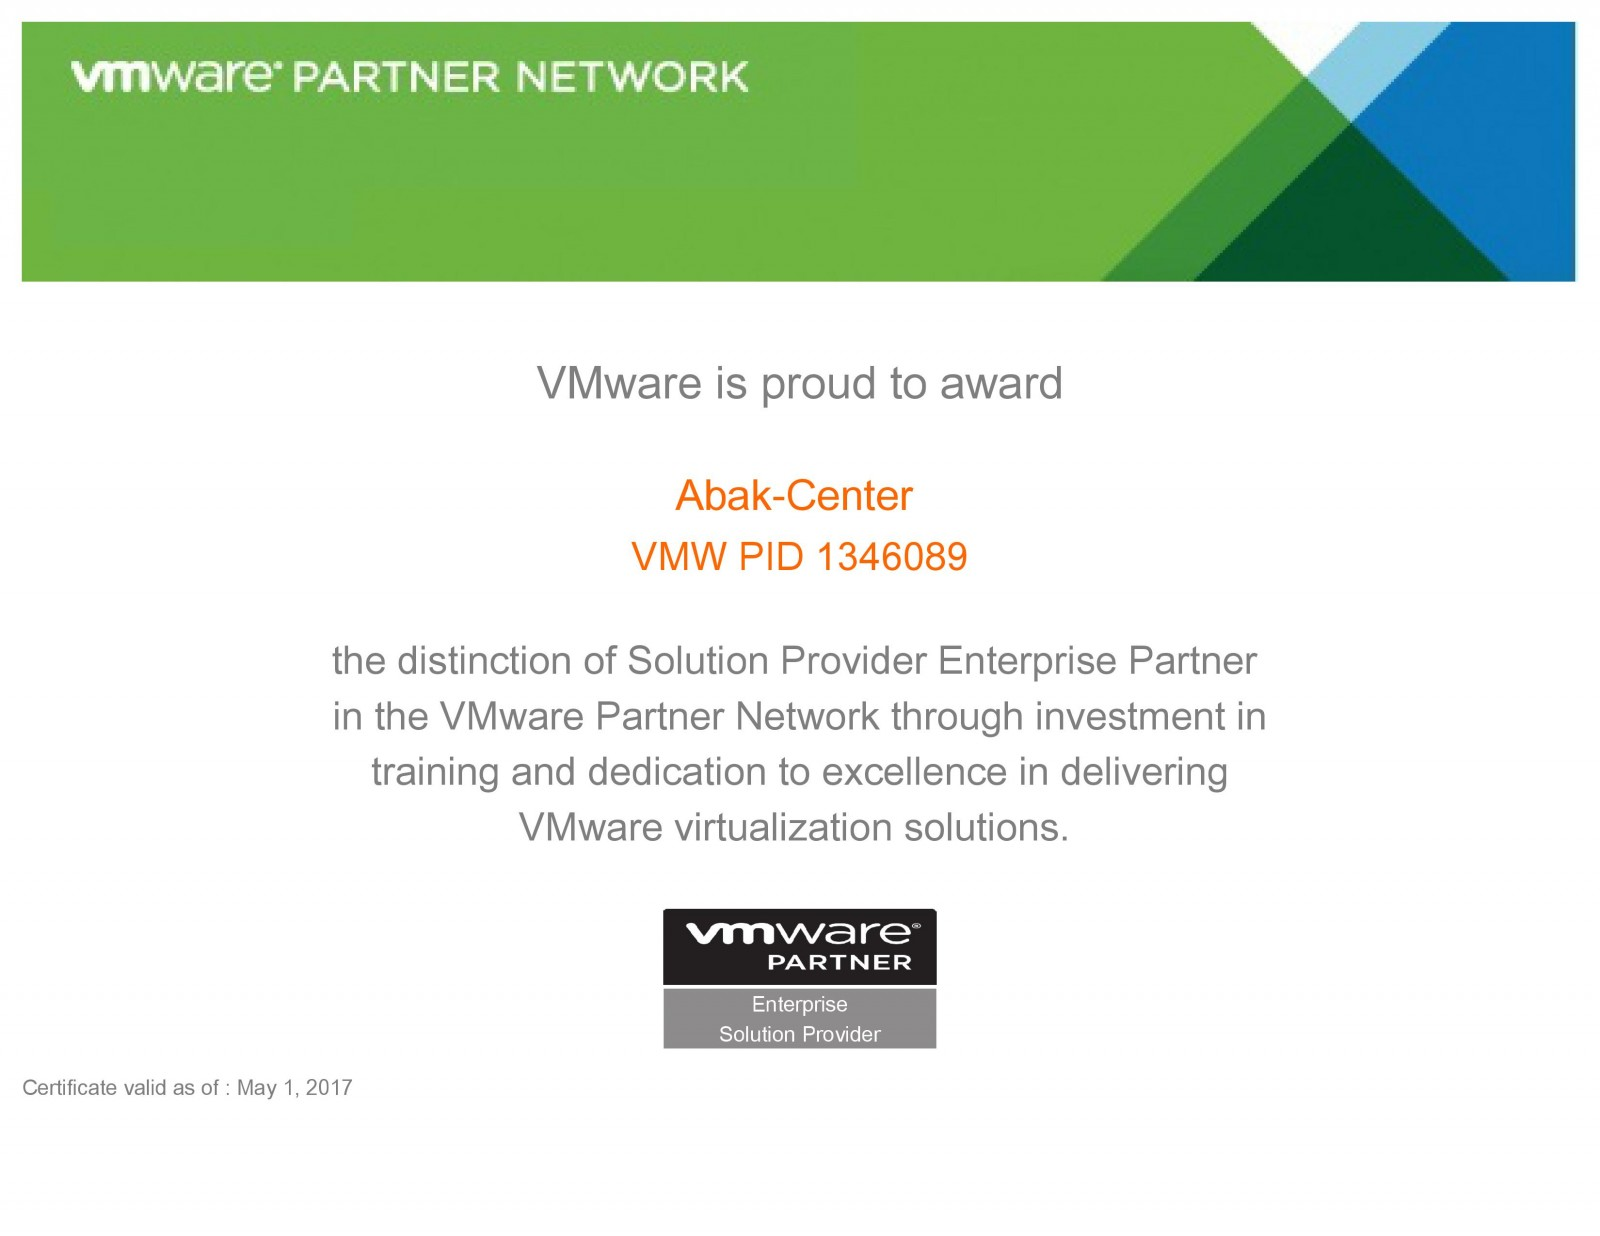 VMWARE Partnet Network